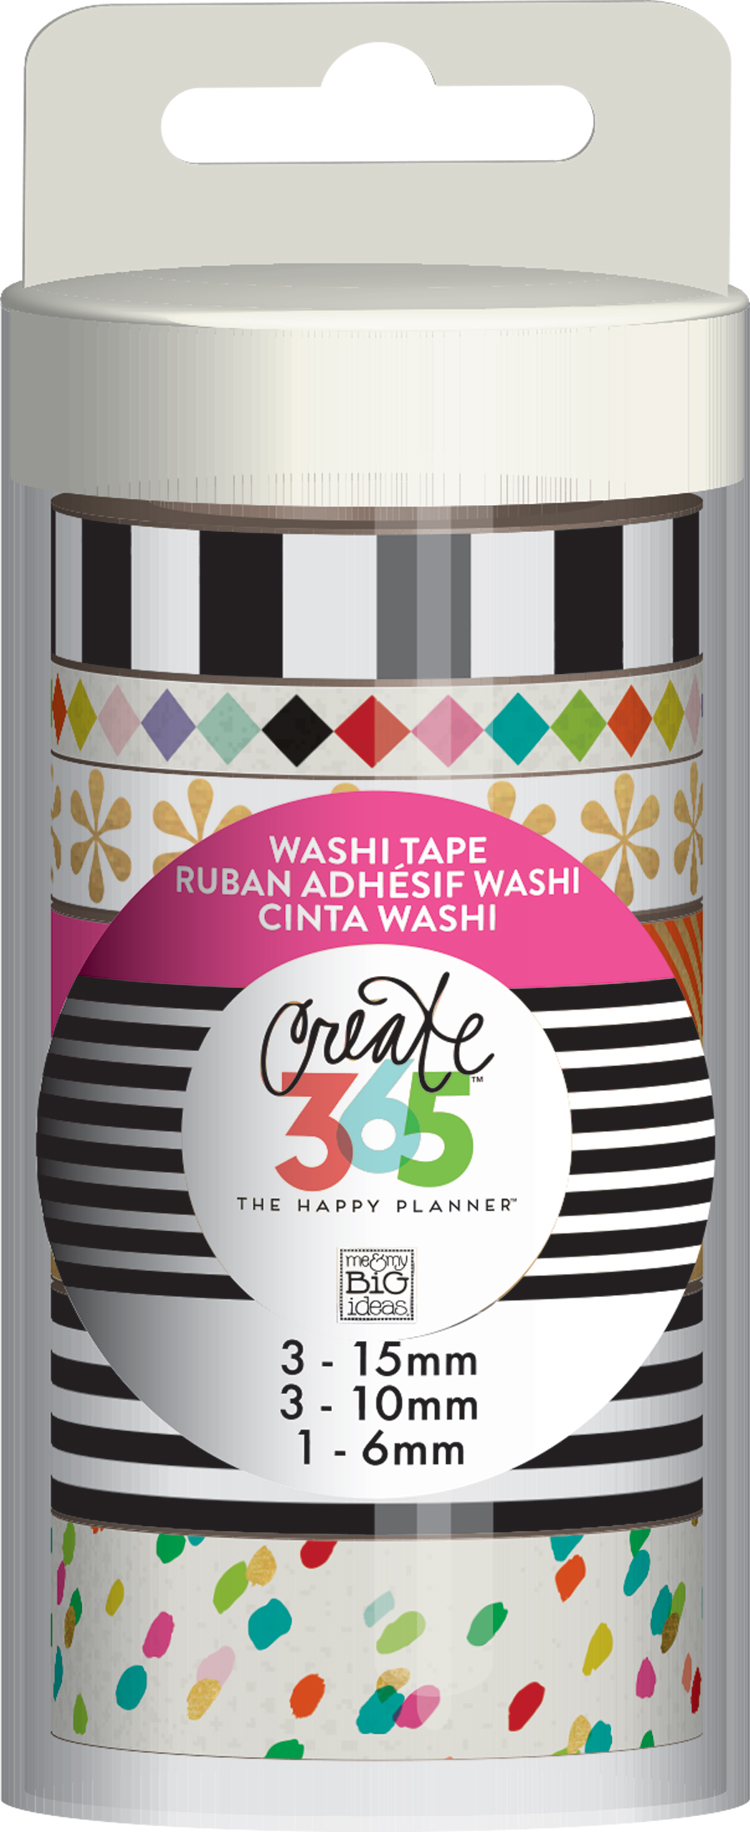 'Bright' Planner Basics™ washi tape for The Happy Planner™ | me & my BIG ideas.jpg